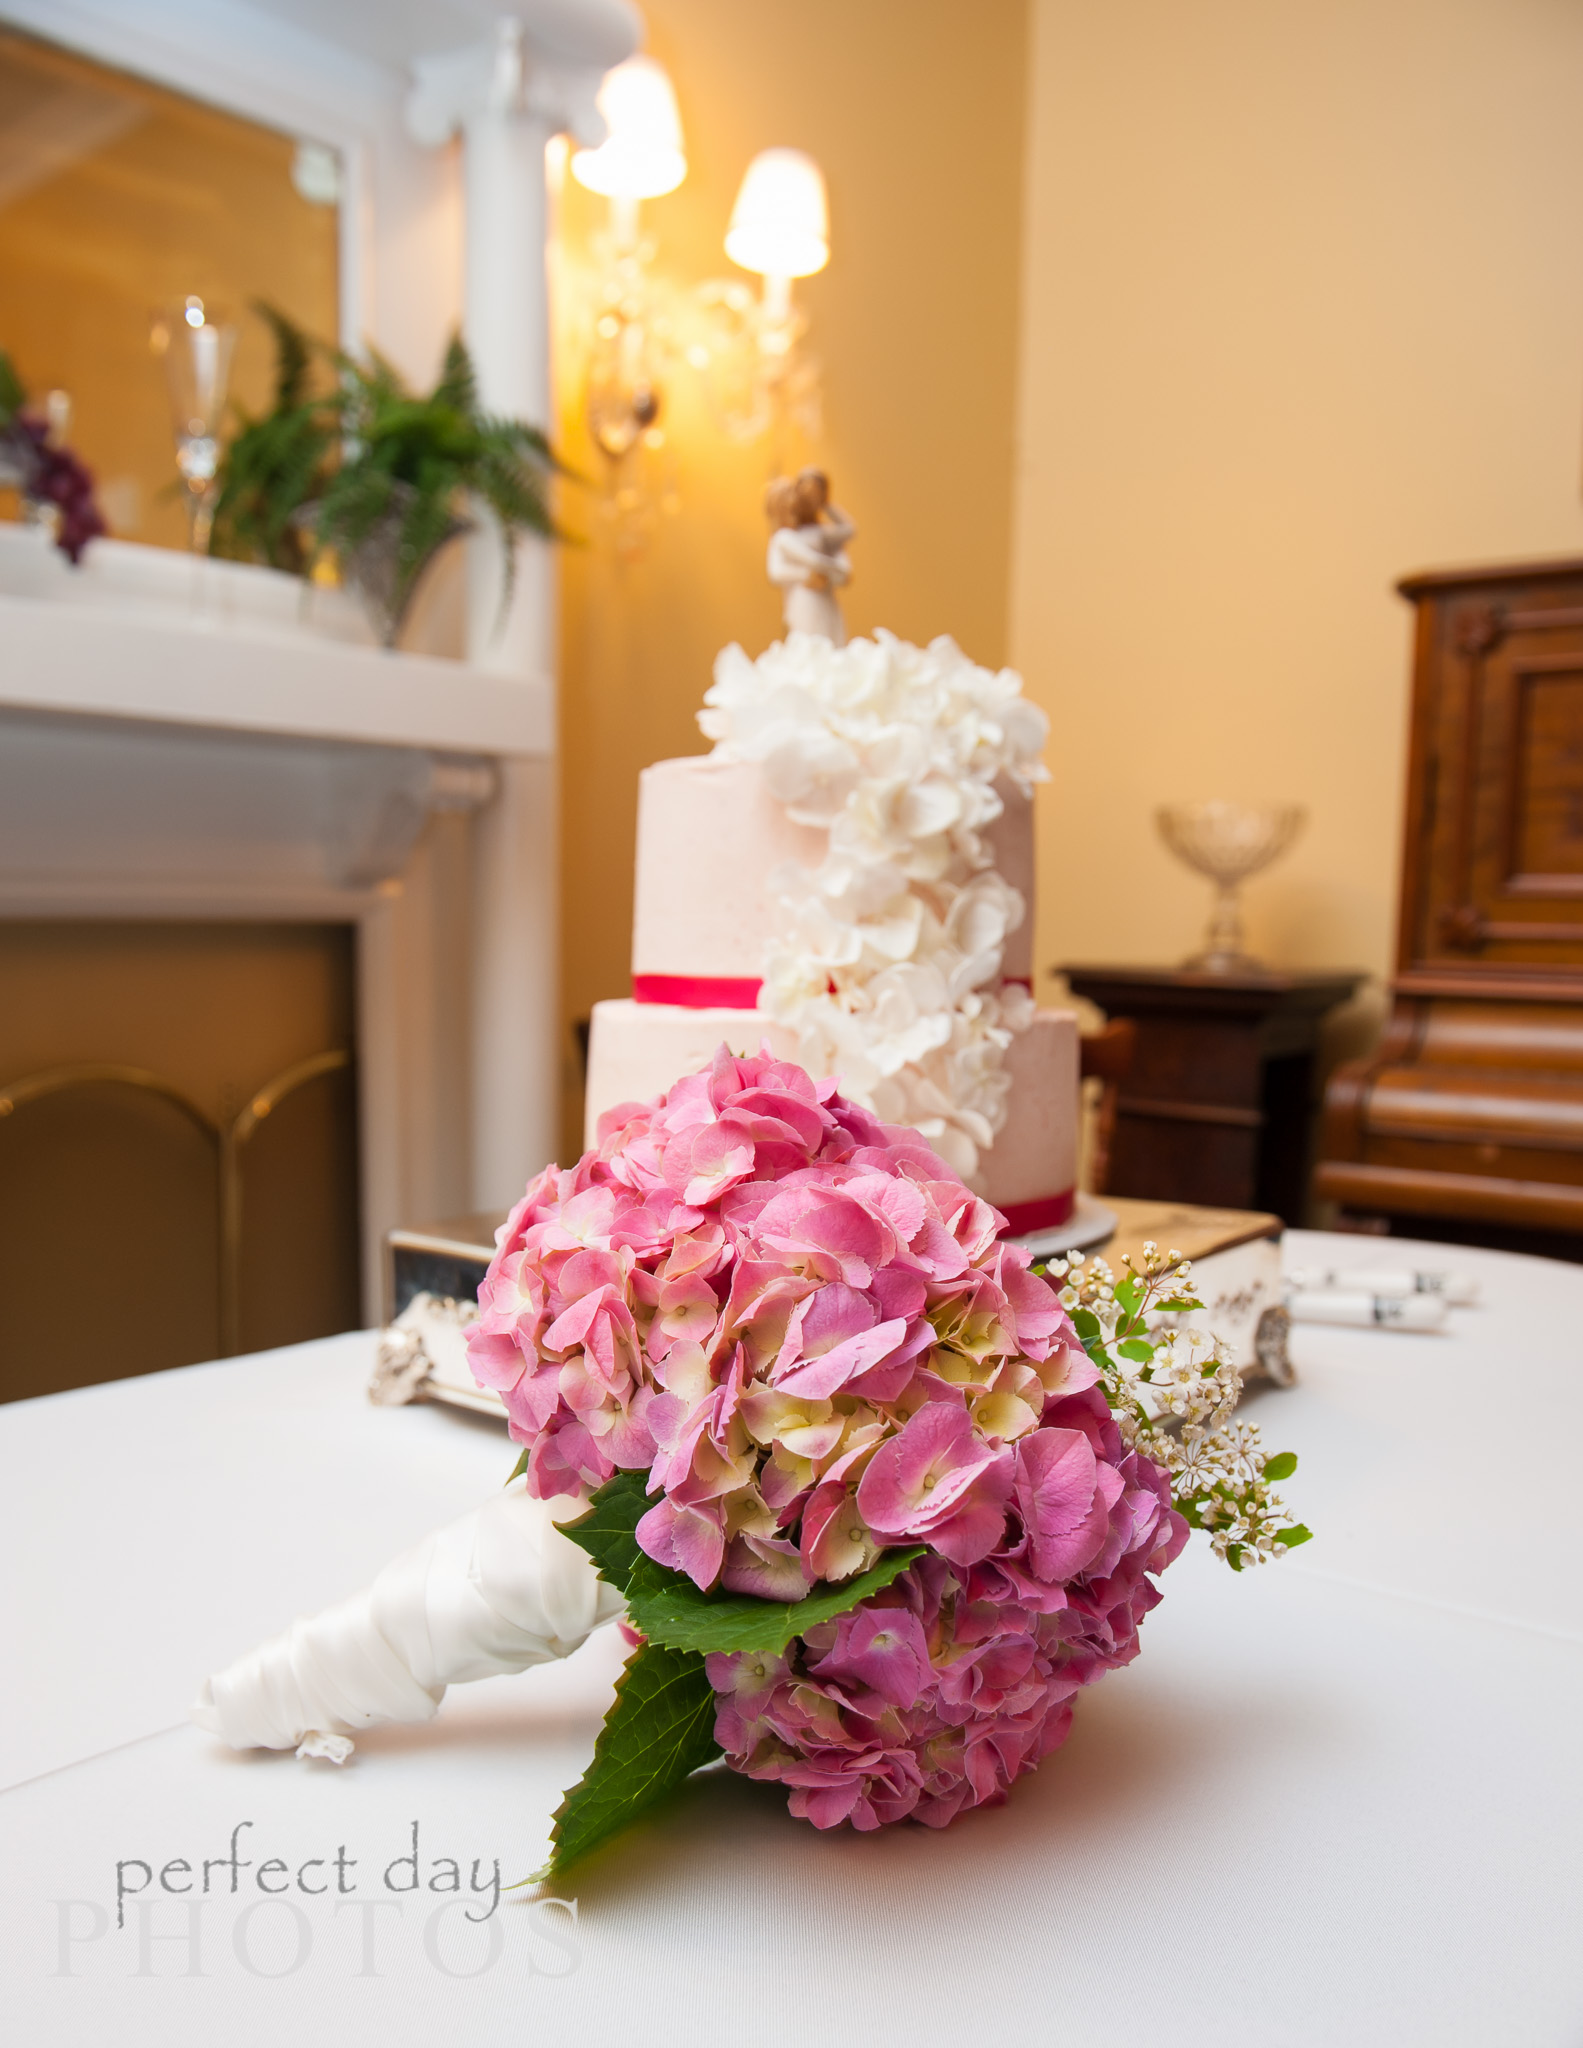 Floral flowers by Florist, bringing color to weddings since the beginning!